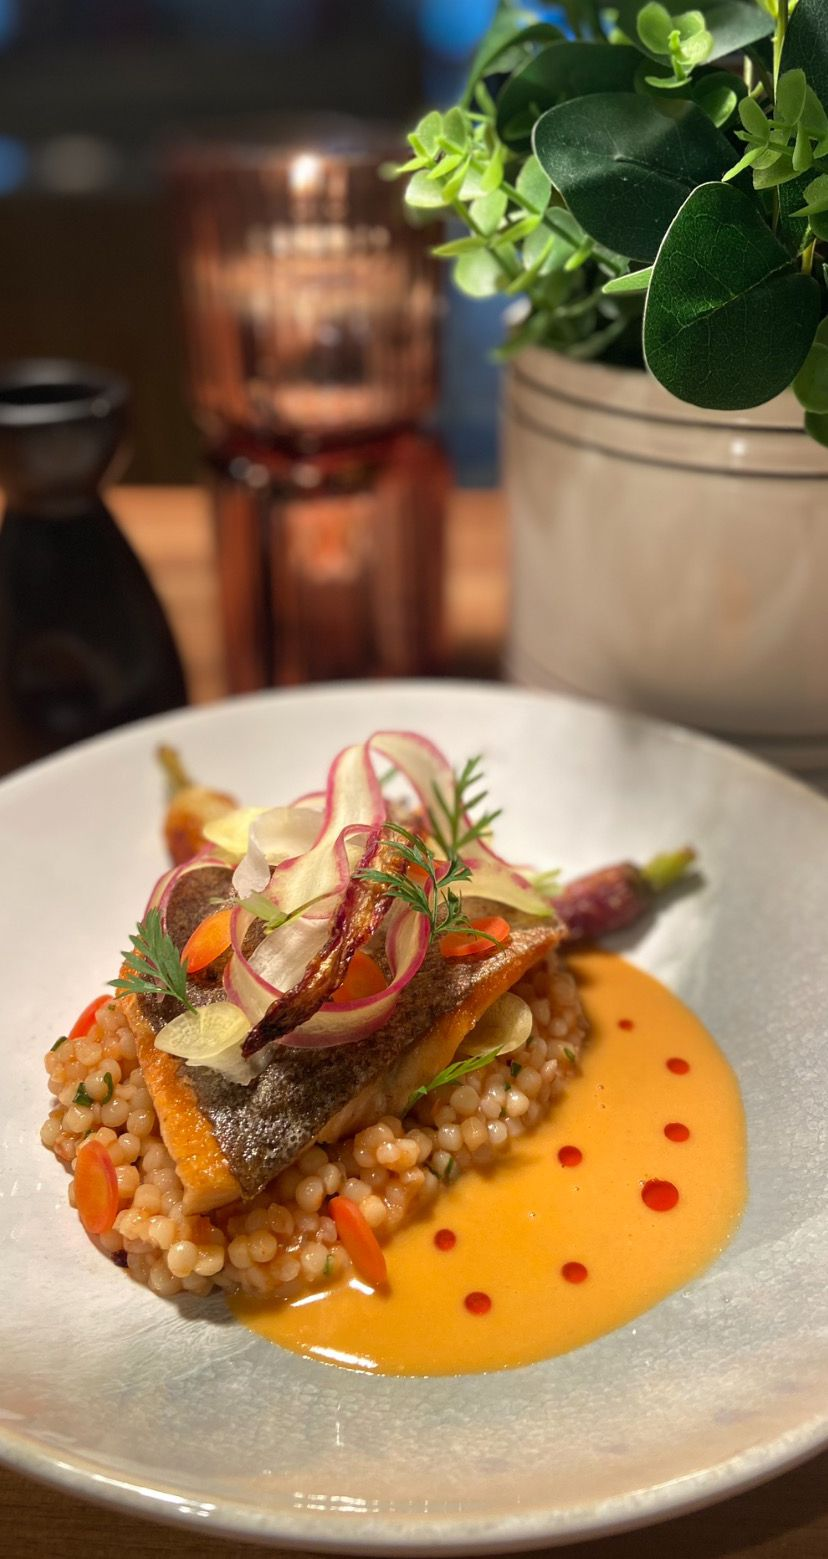 Chef Preston Paine created a new dish for Oak in Dallas: ocean trout with Israeli couscous and variations of carrot. Paine is the director of culinary for a fleet of restaurants owned by ARG Concepts.